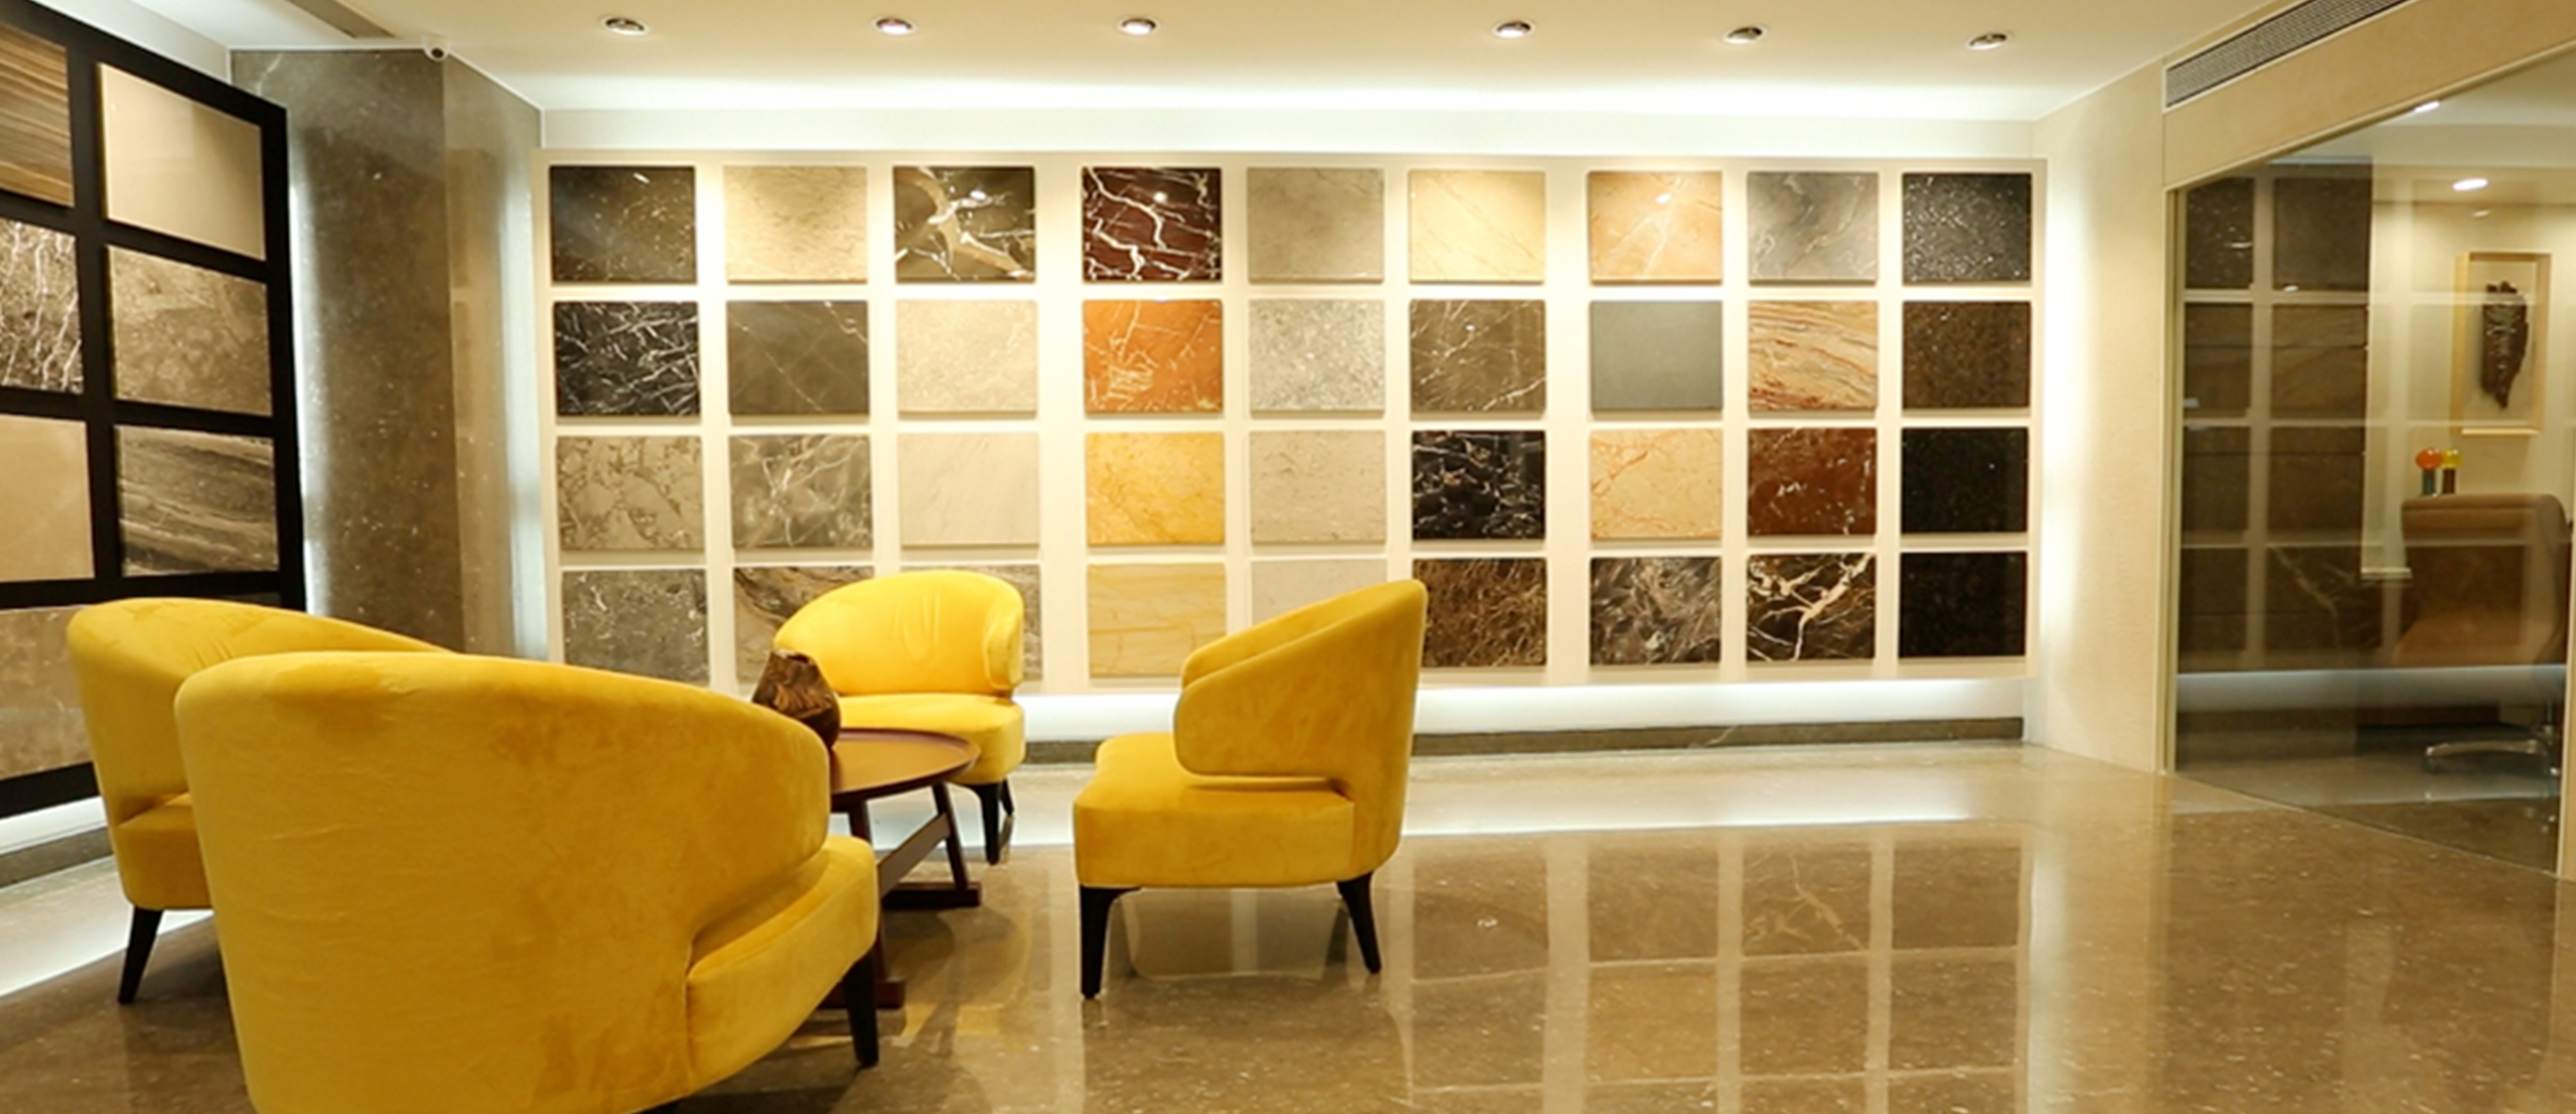 Imported Marble In Delhi, India By Gemstone Impex